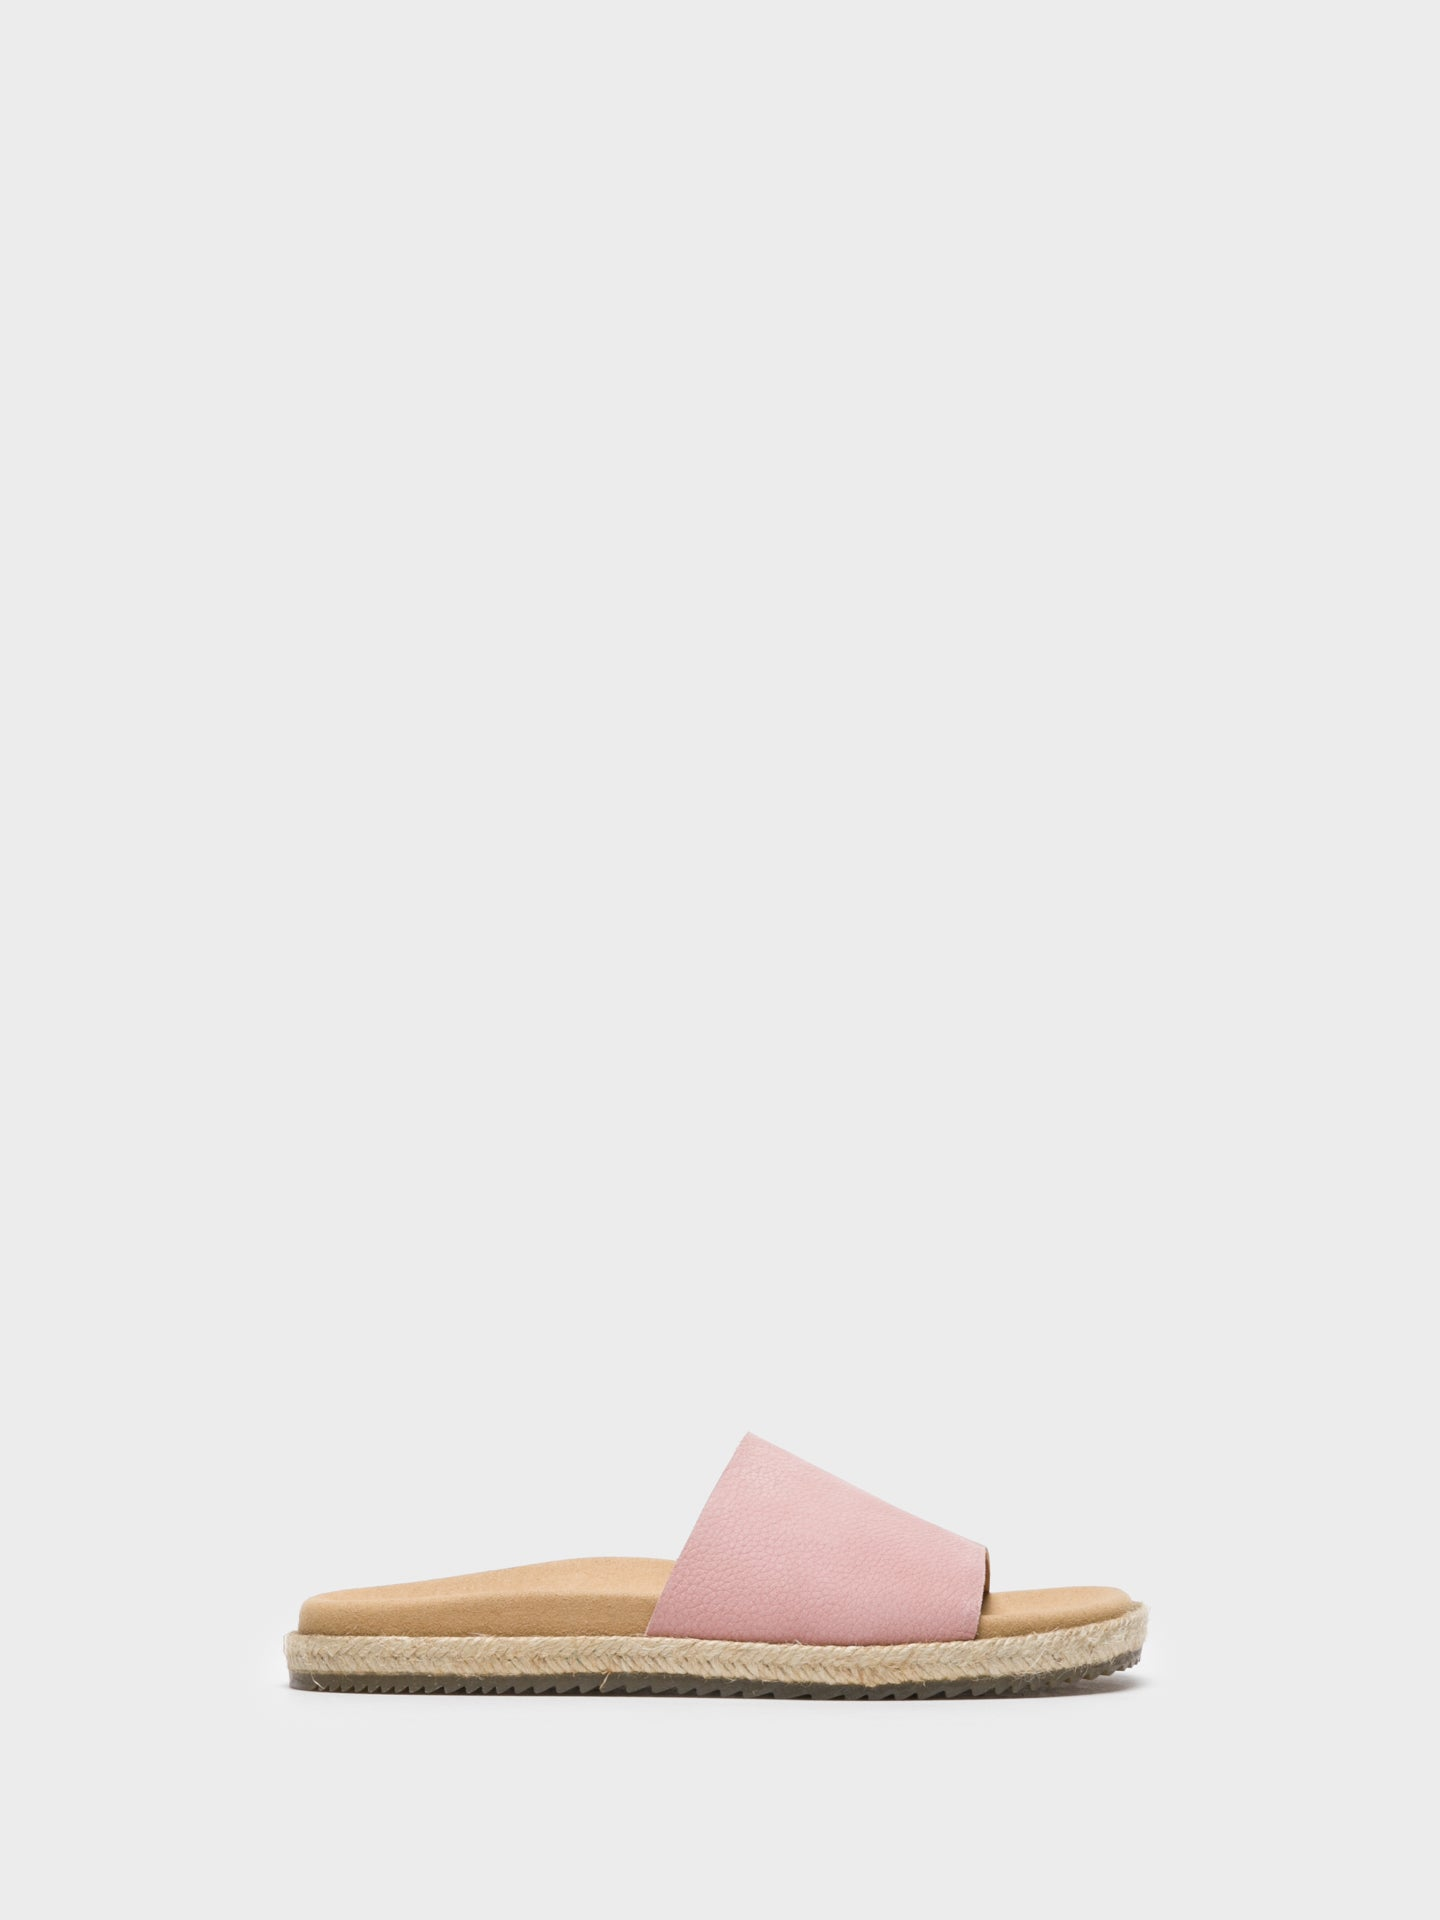 Only2me Mules mit offener Kappe in Rosa